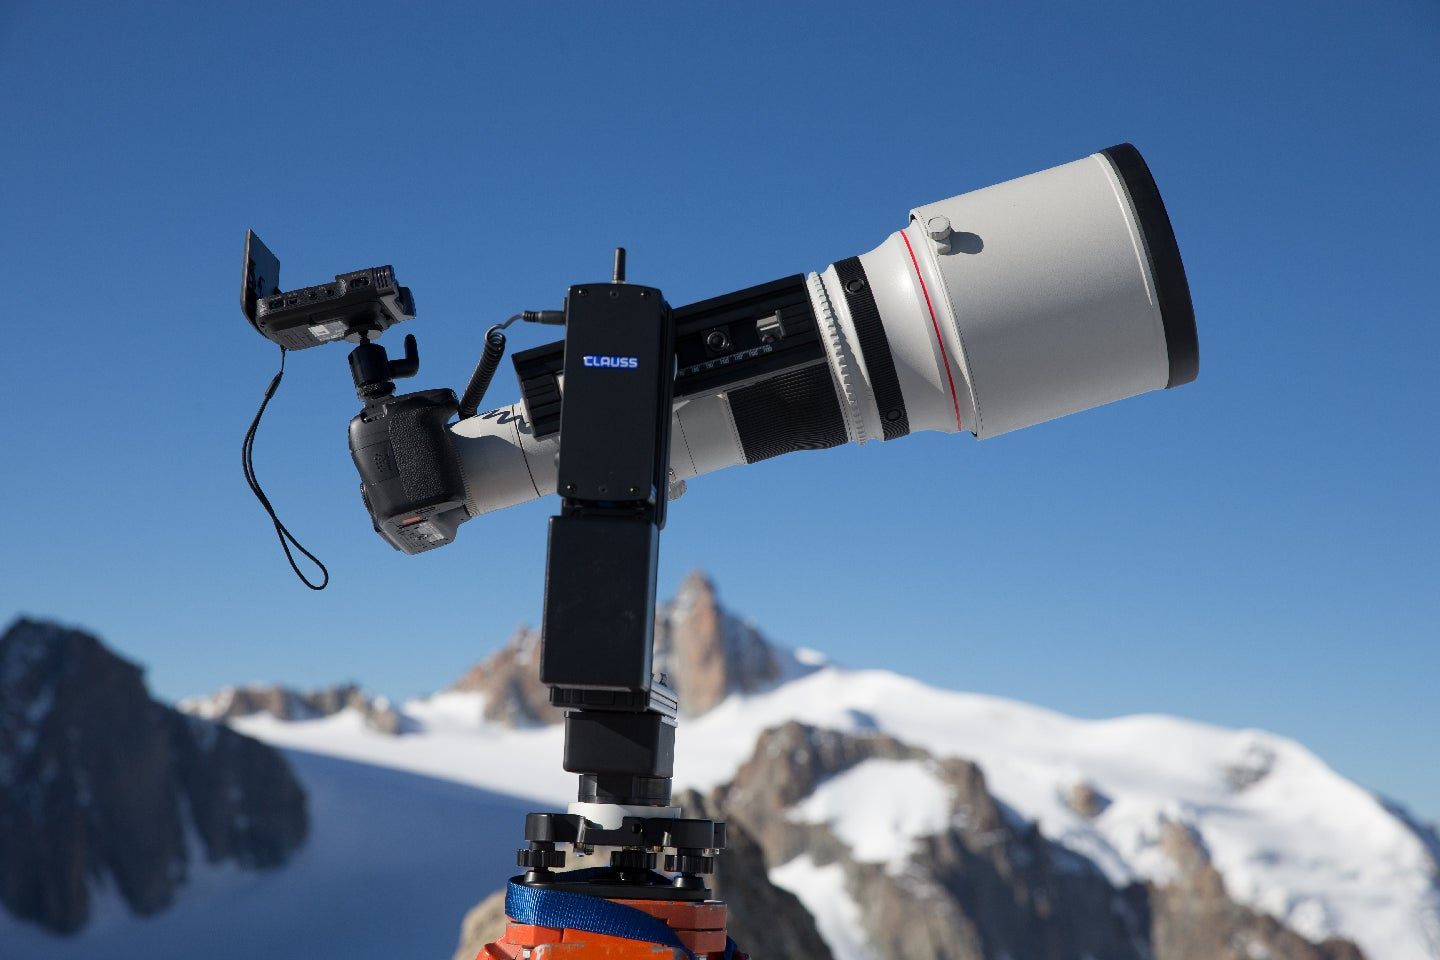 It Took 70,000 Images To Make The World's Highest Resolution Panoramic Photo